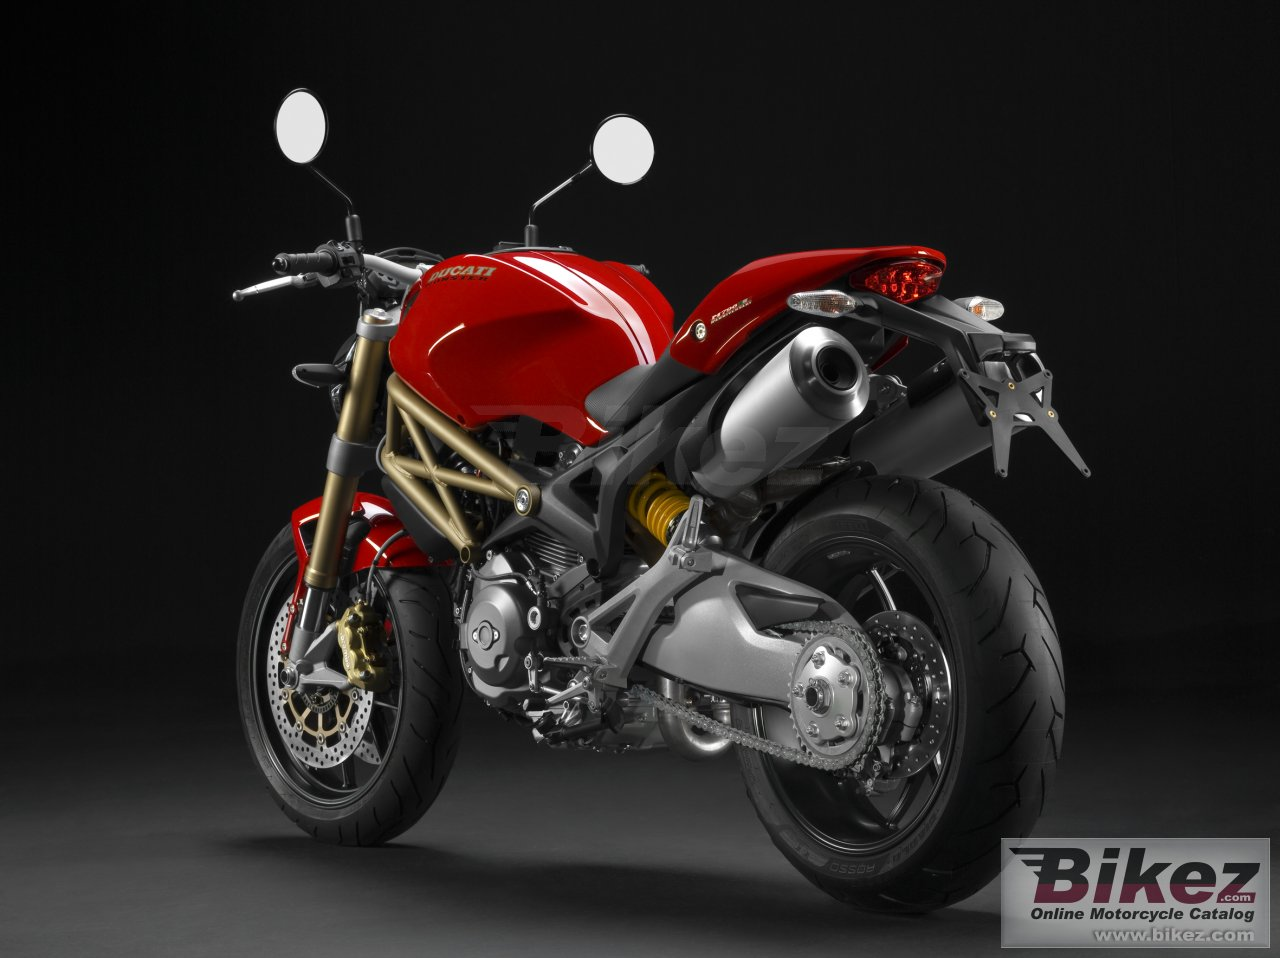 Big Ducati monster 796 20th anniversary picture and wallpaper from Bikez.com